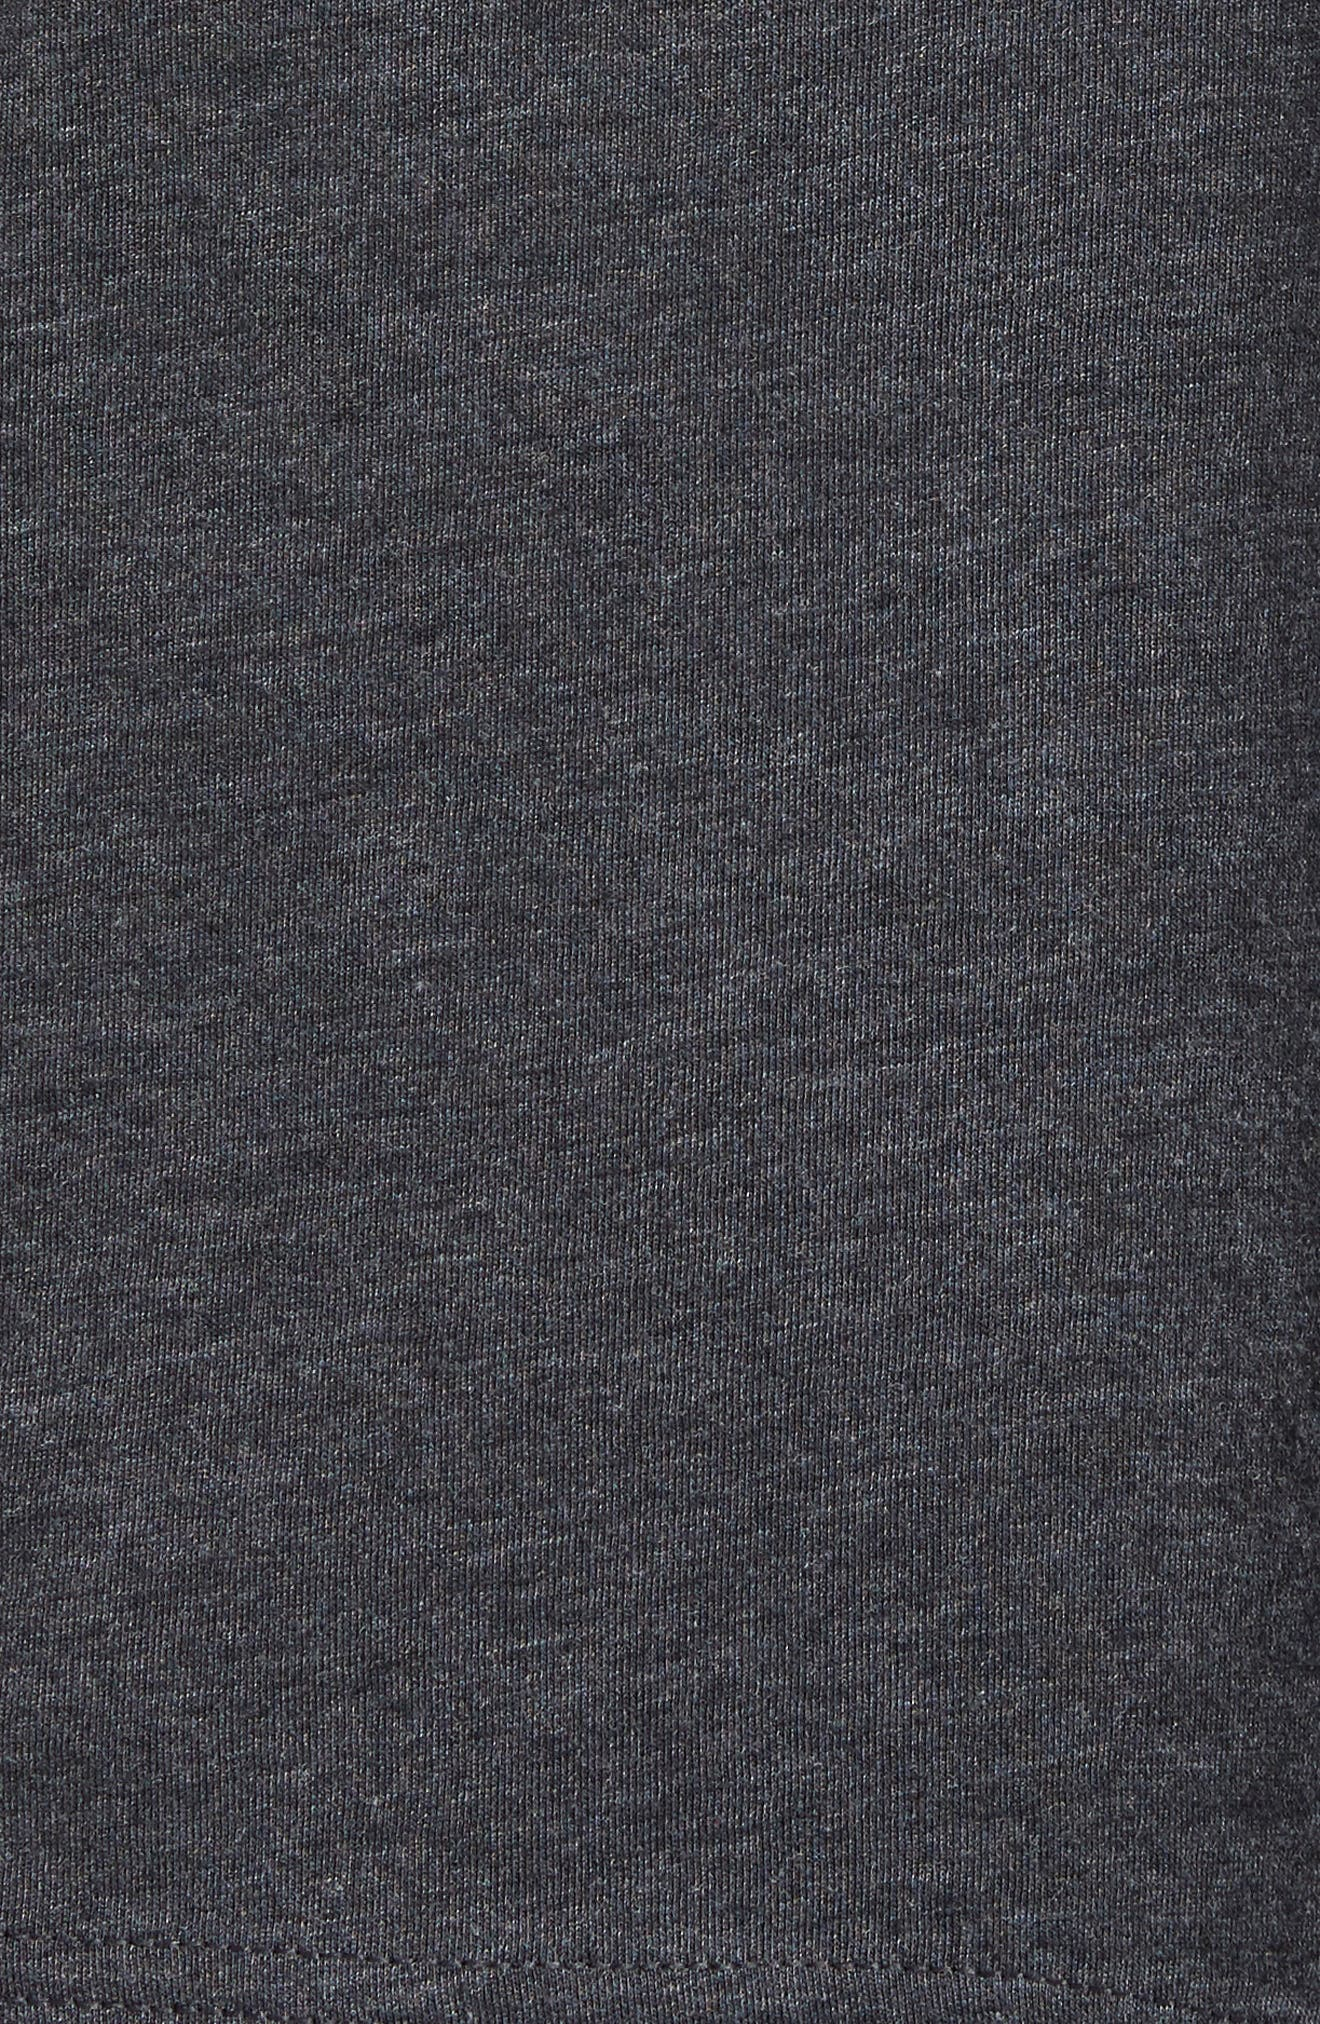 Germany Jersey T-Shirt,                             Alternate thumbnail 5, color,                             020